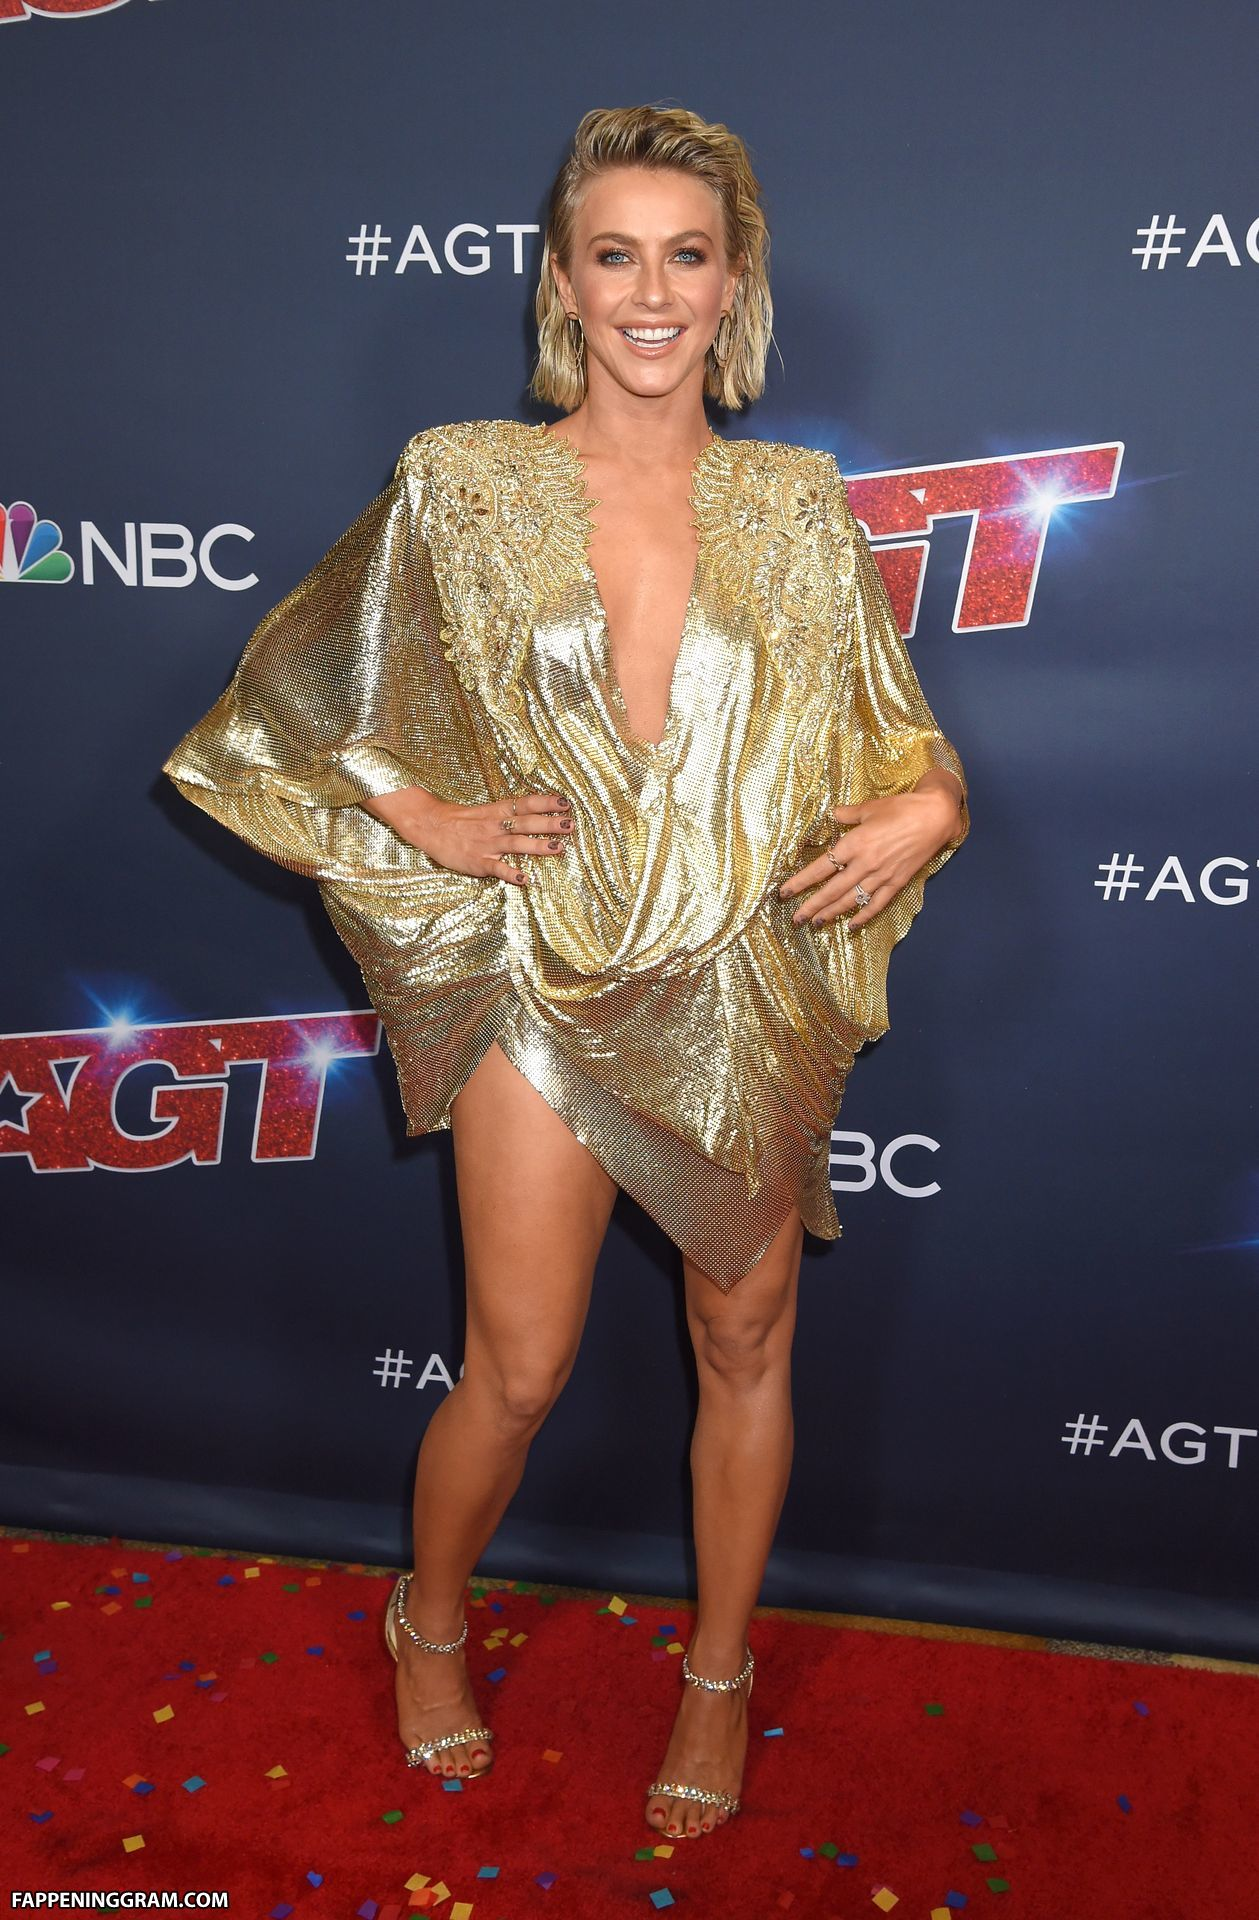 Julianne Hough Sexy - The Fappening Leaked Photos 2015-2021